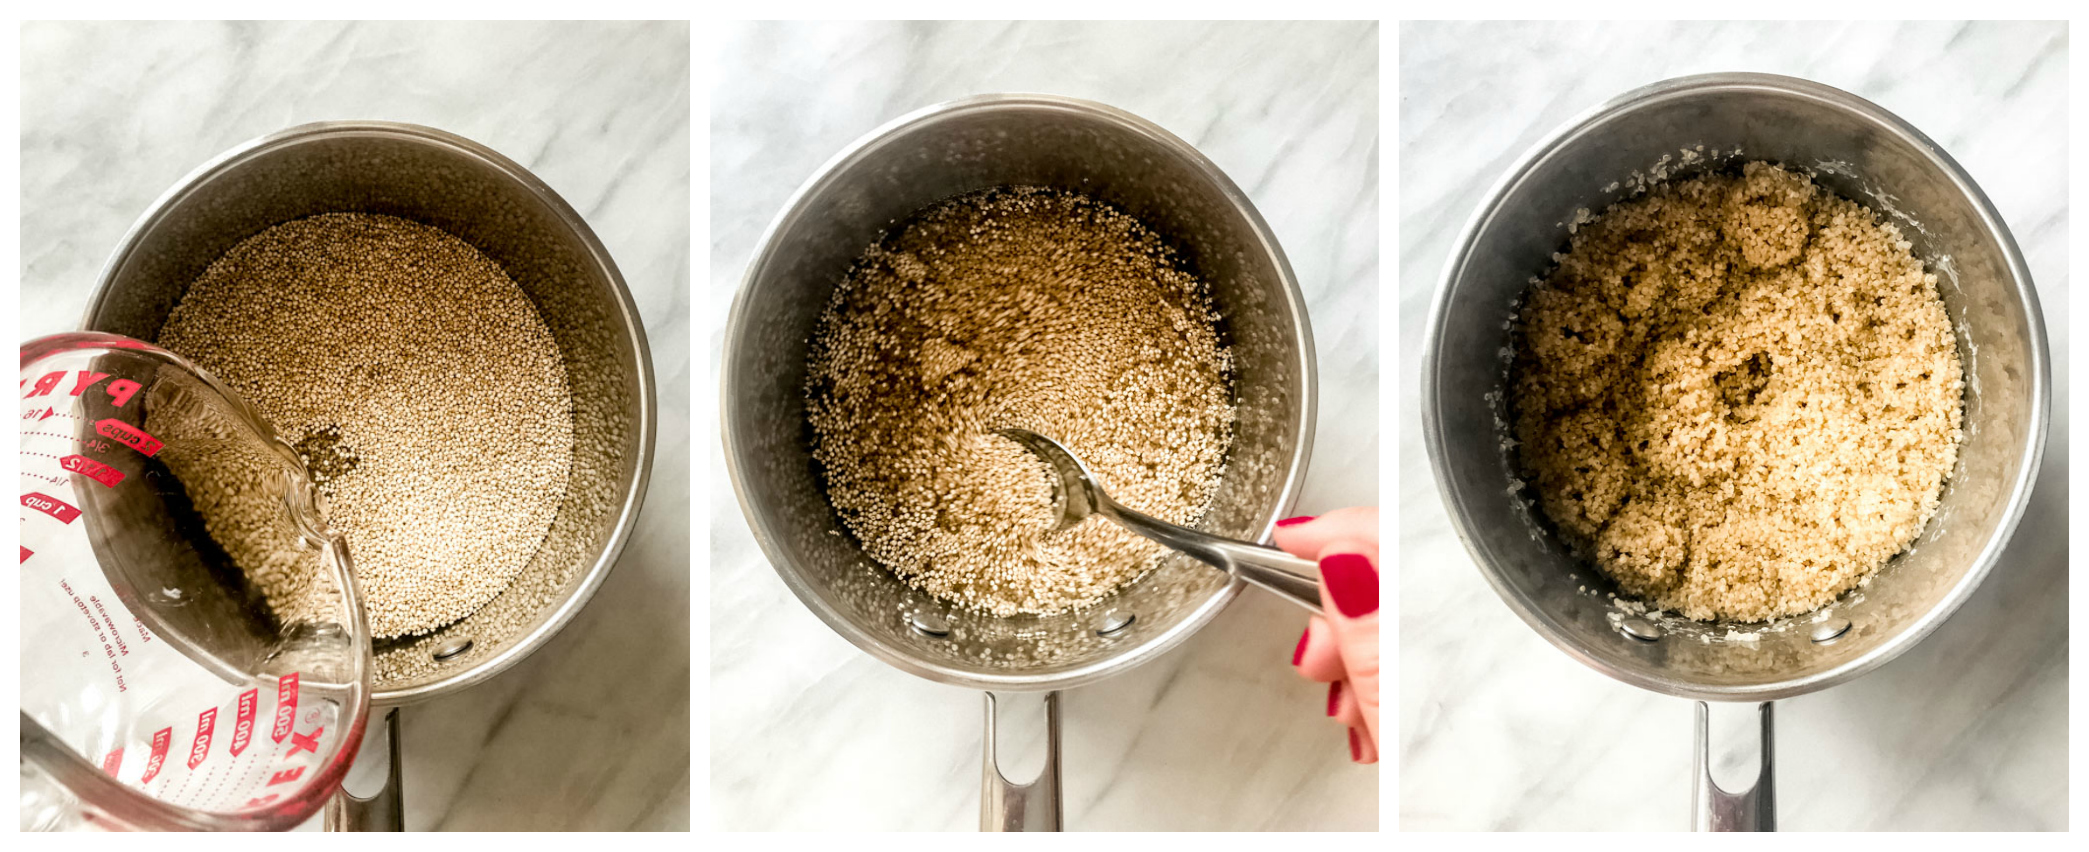 Step by step on how to cook quinoa